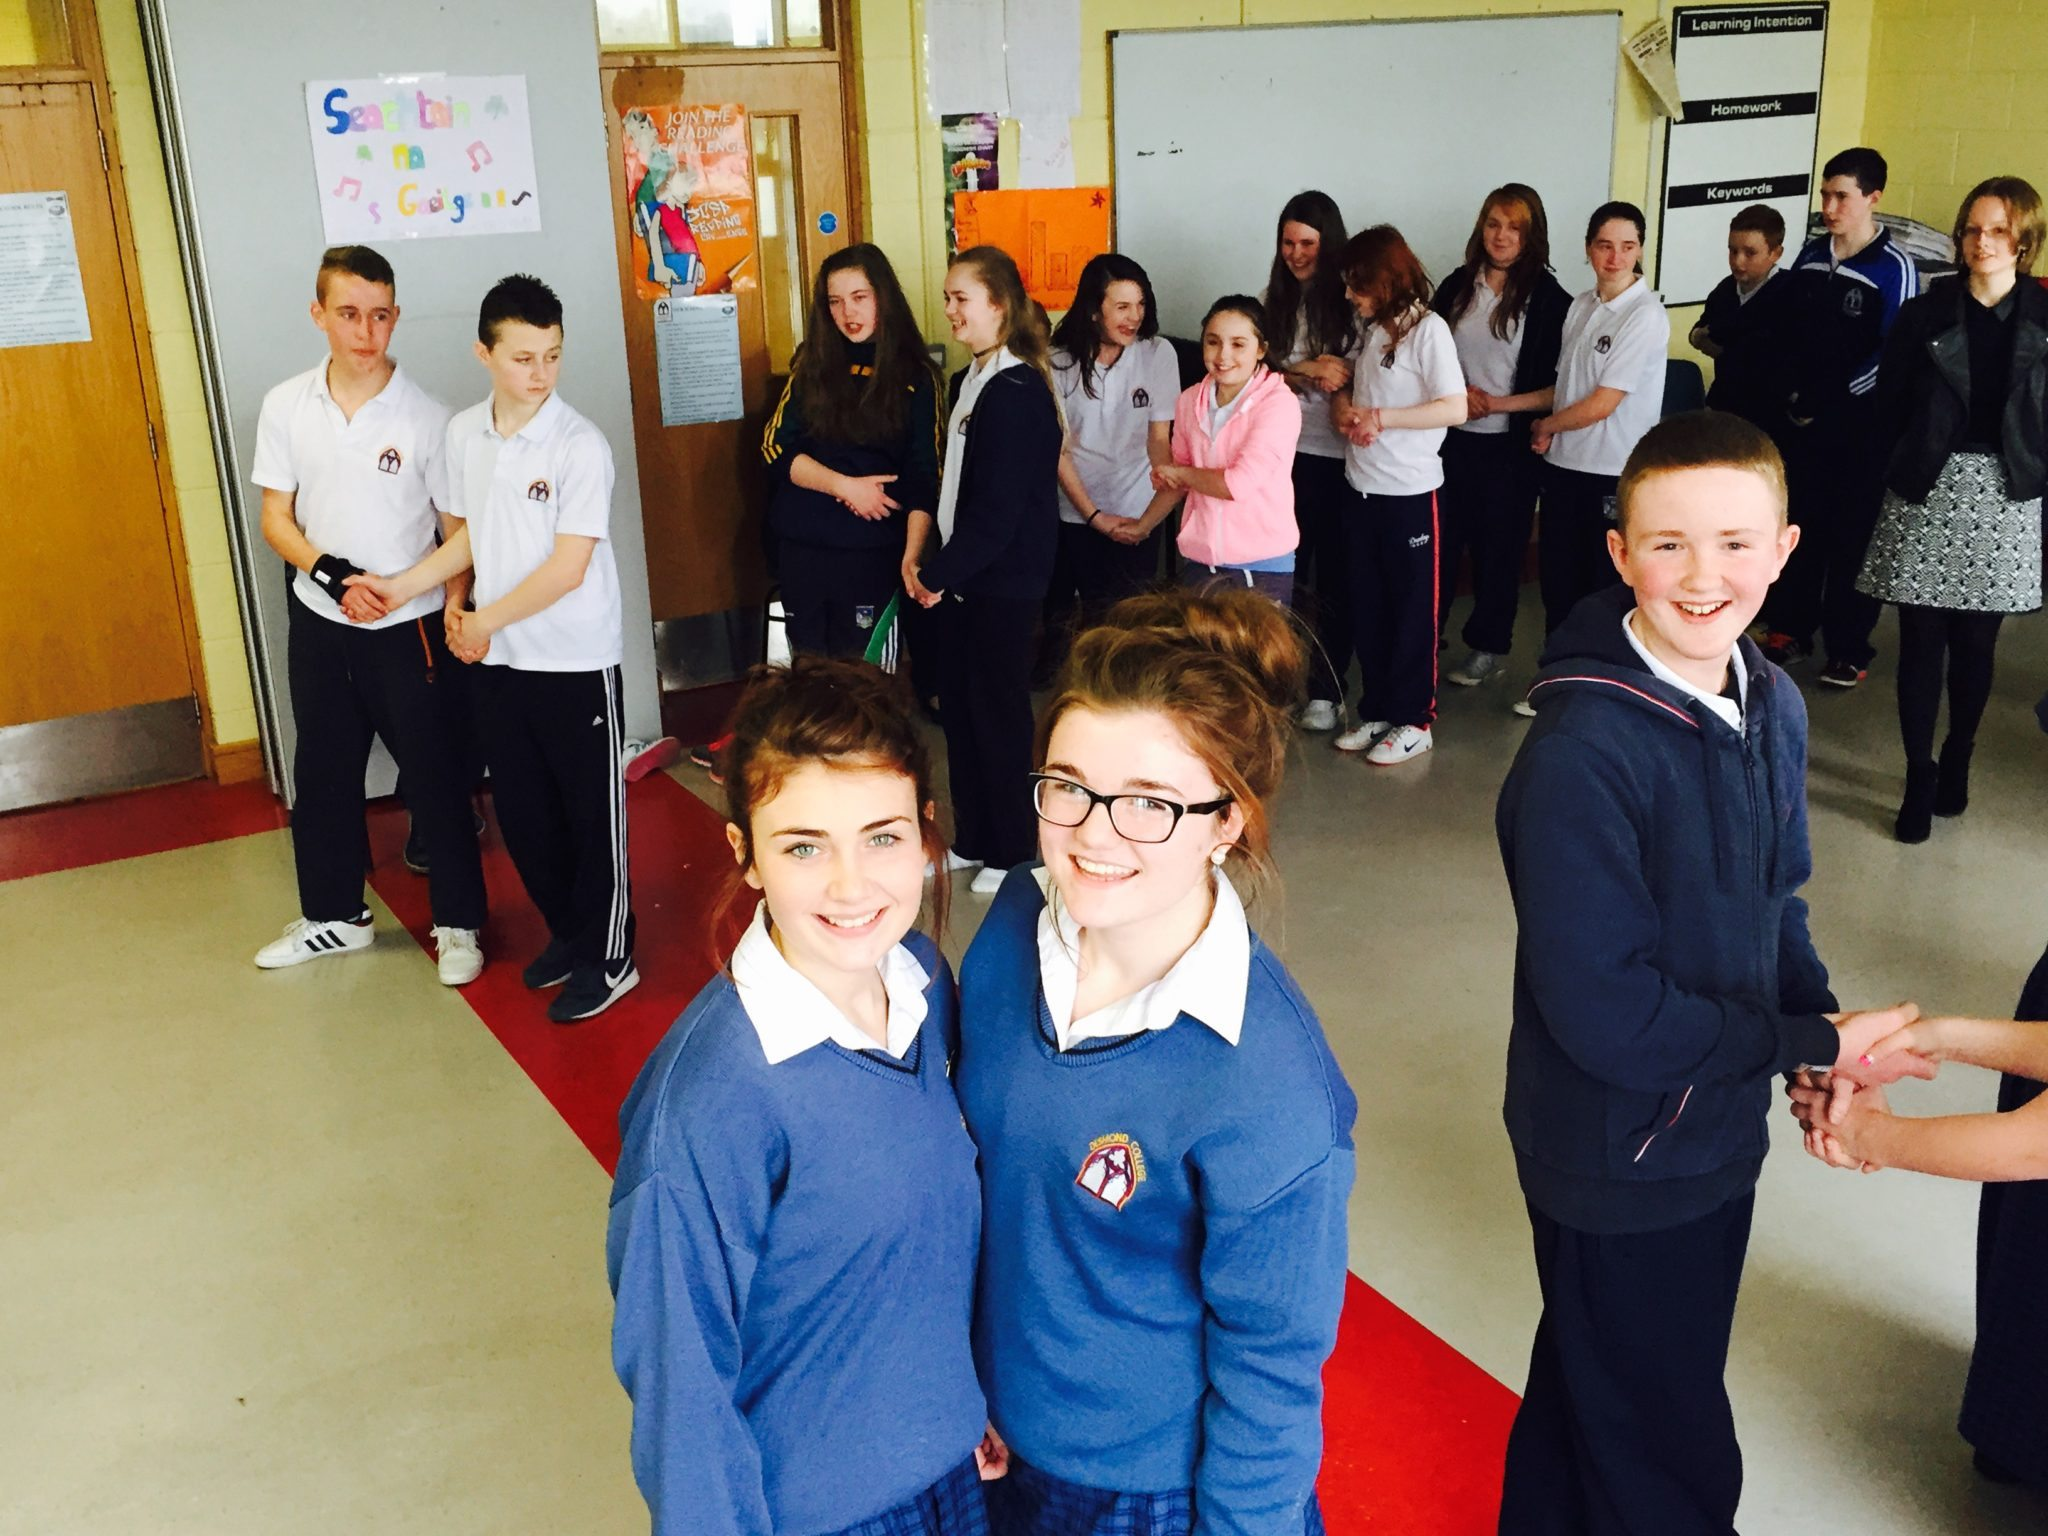 Emma Herbert and Claire Mortell enjoy their mentoring role at the Irish Céilí for First Years.